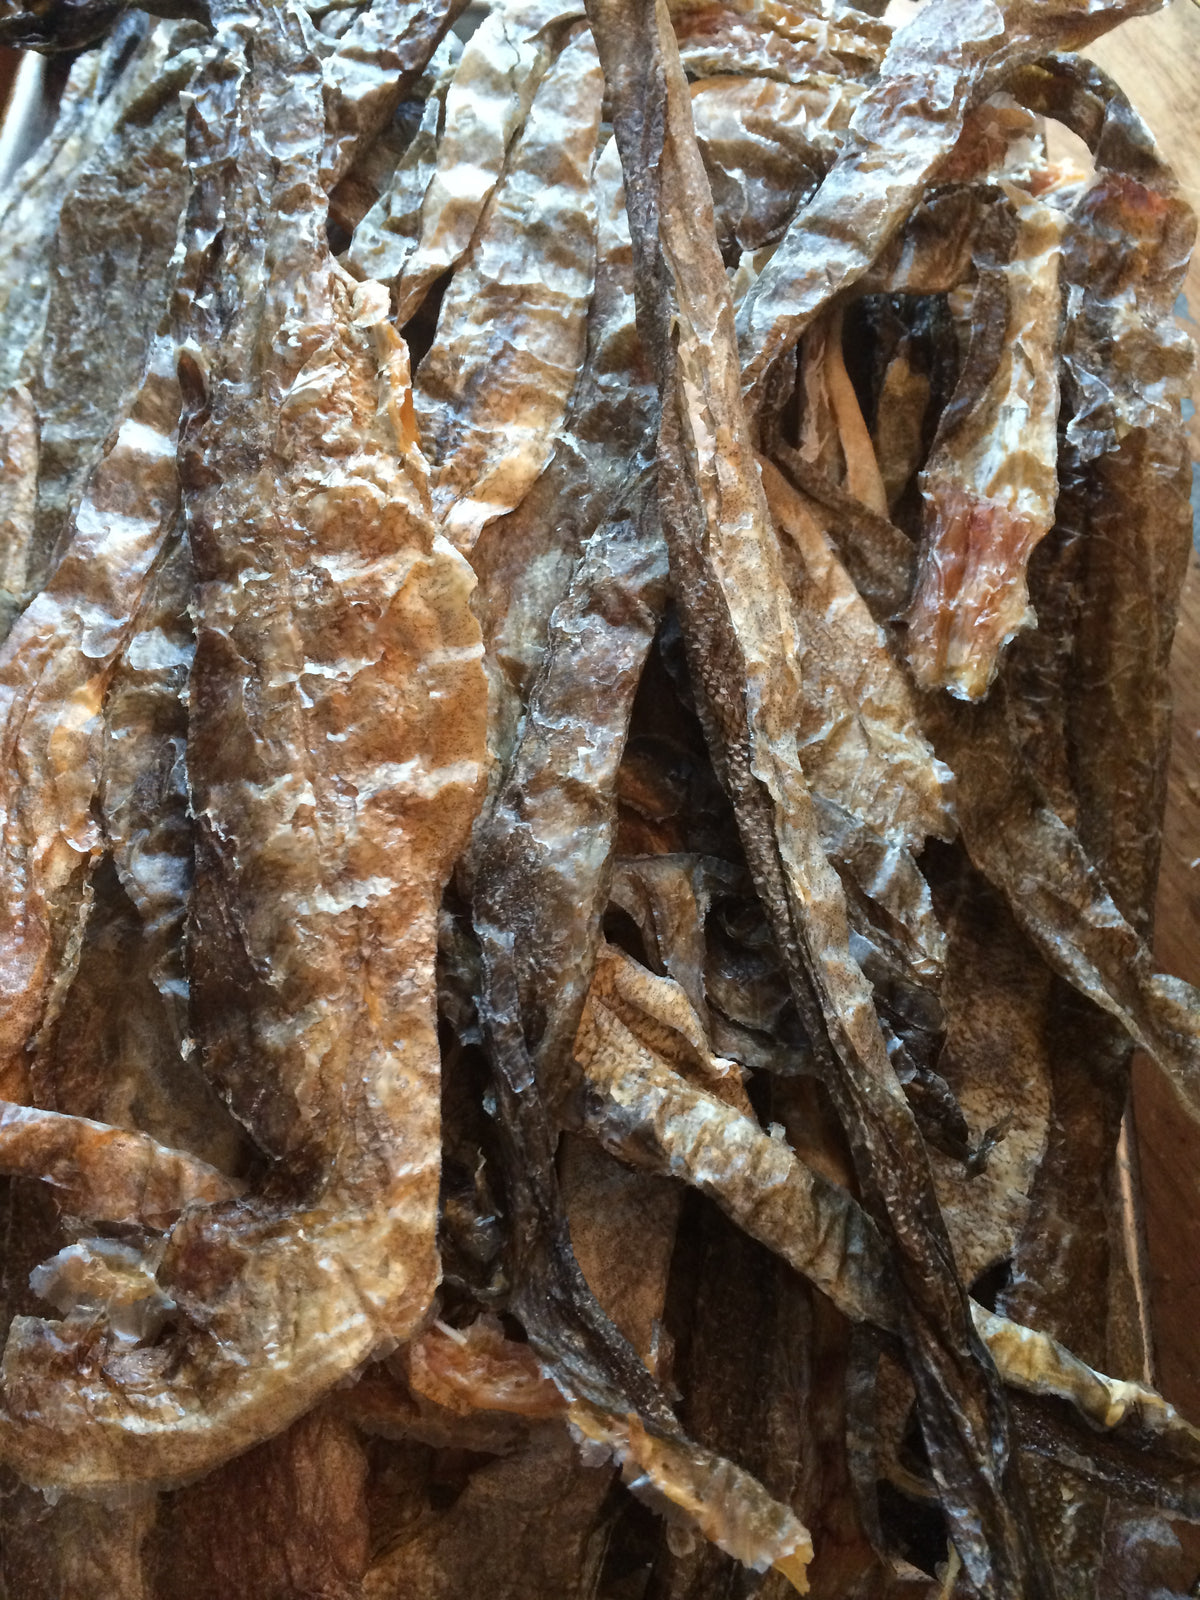 cod skins for dogs from Alaska